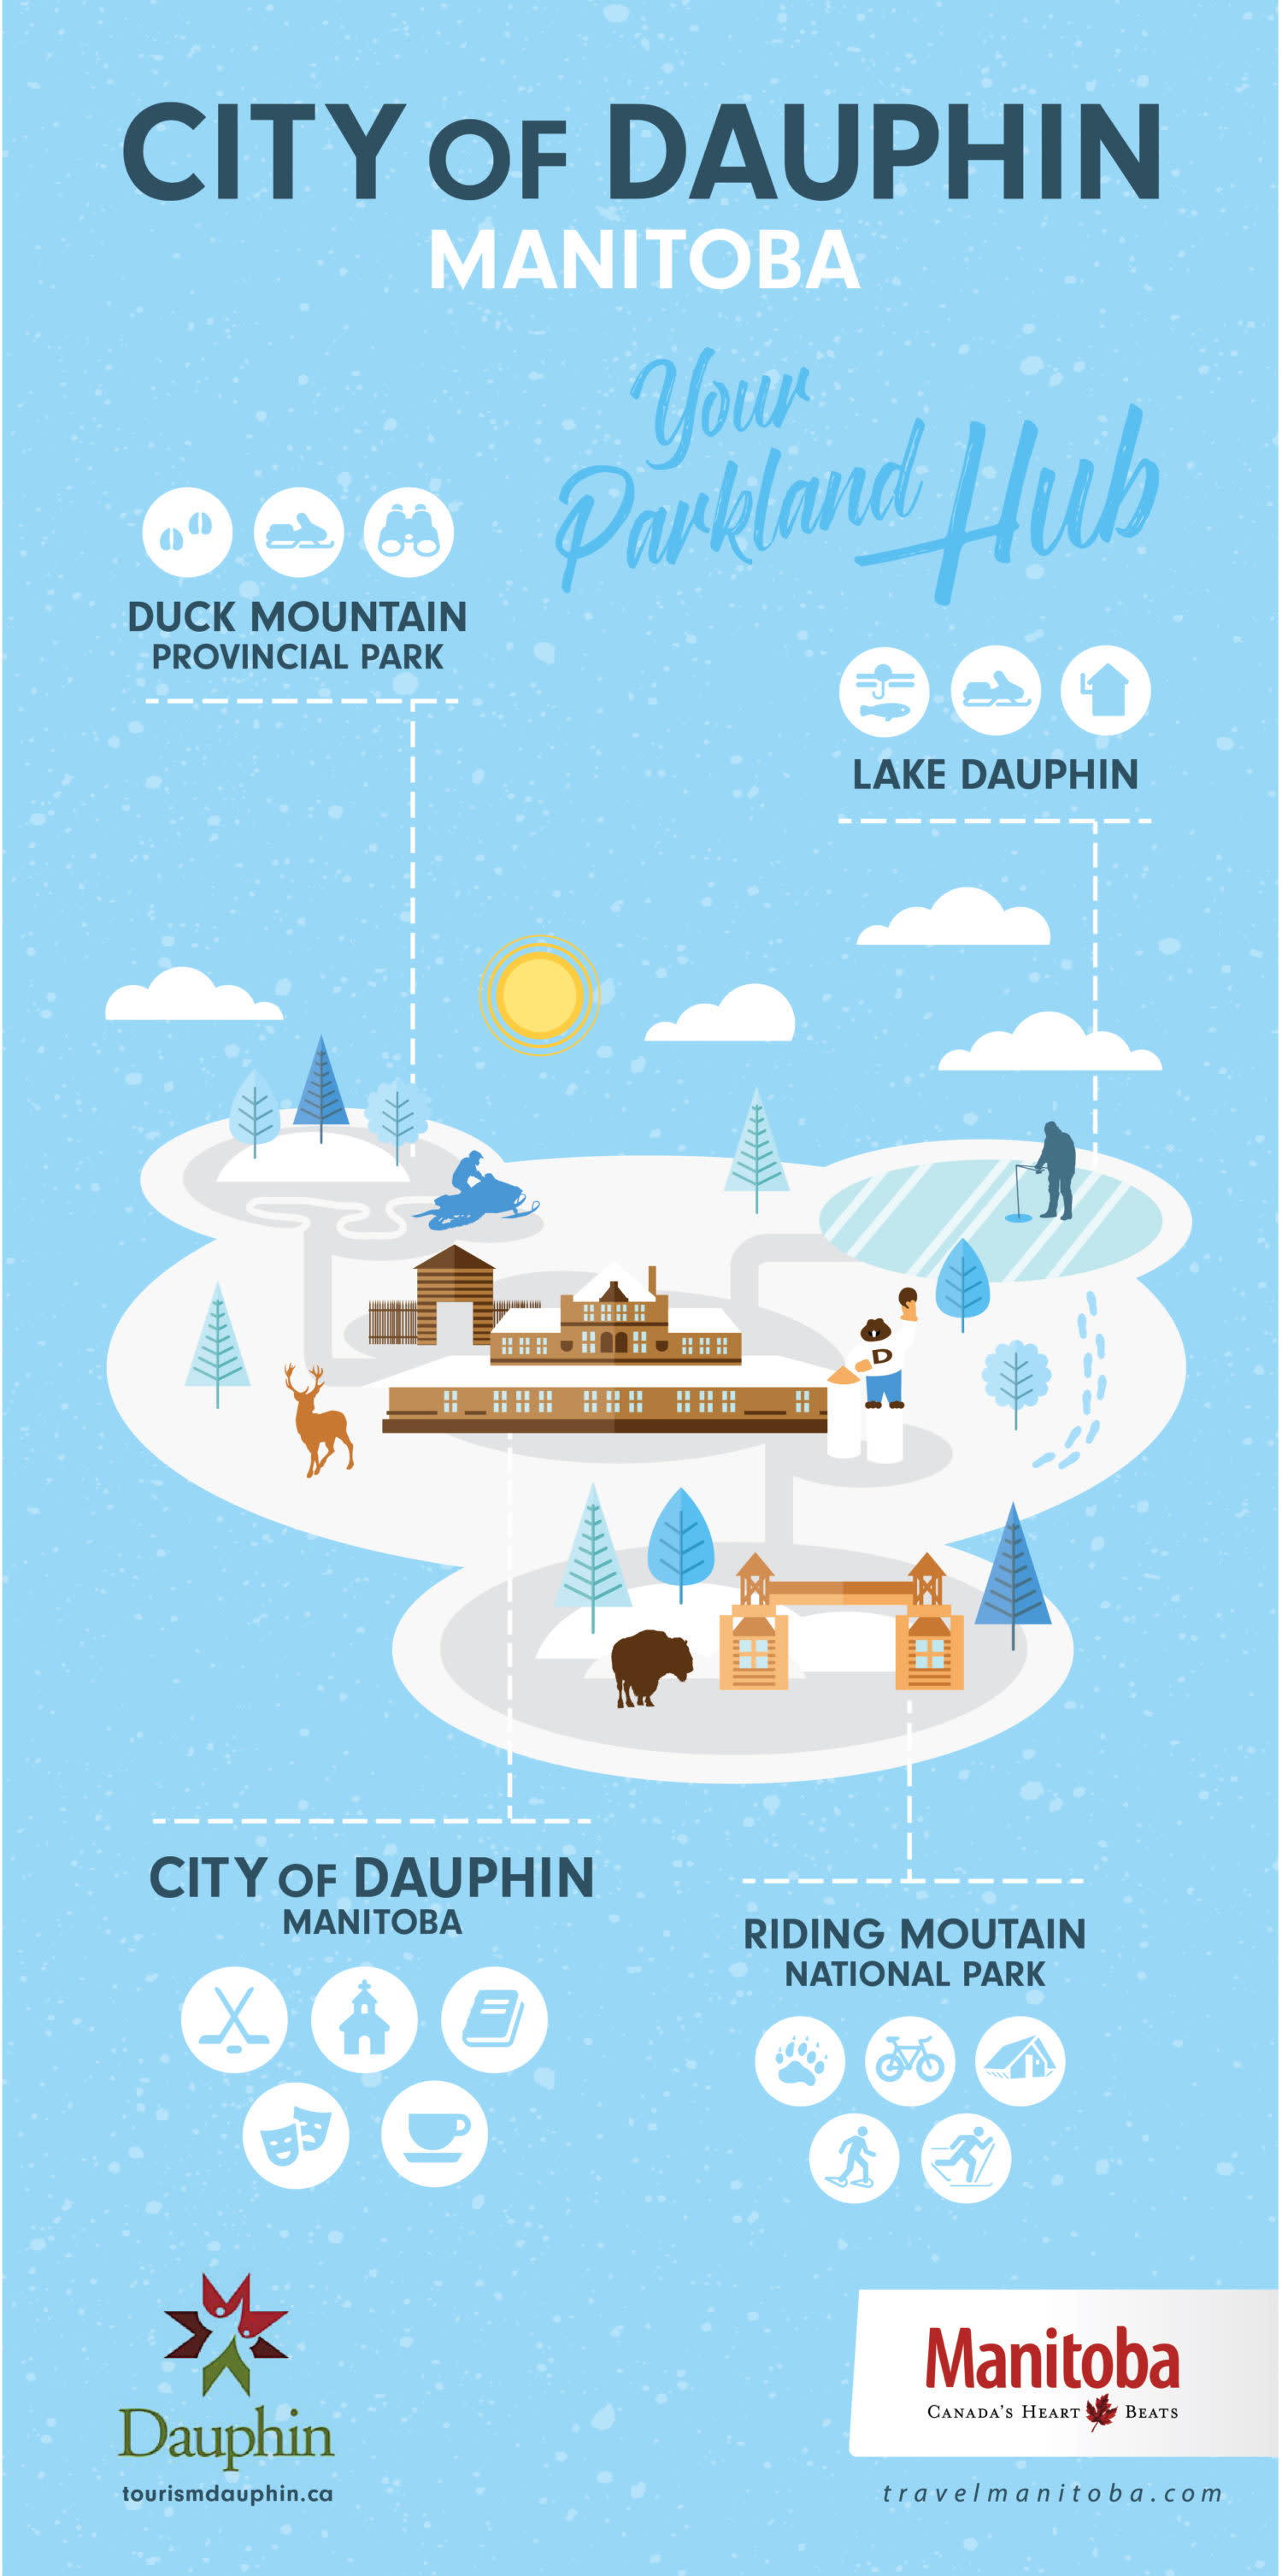 What to do in and around Dauphin, Manitoba